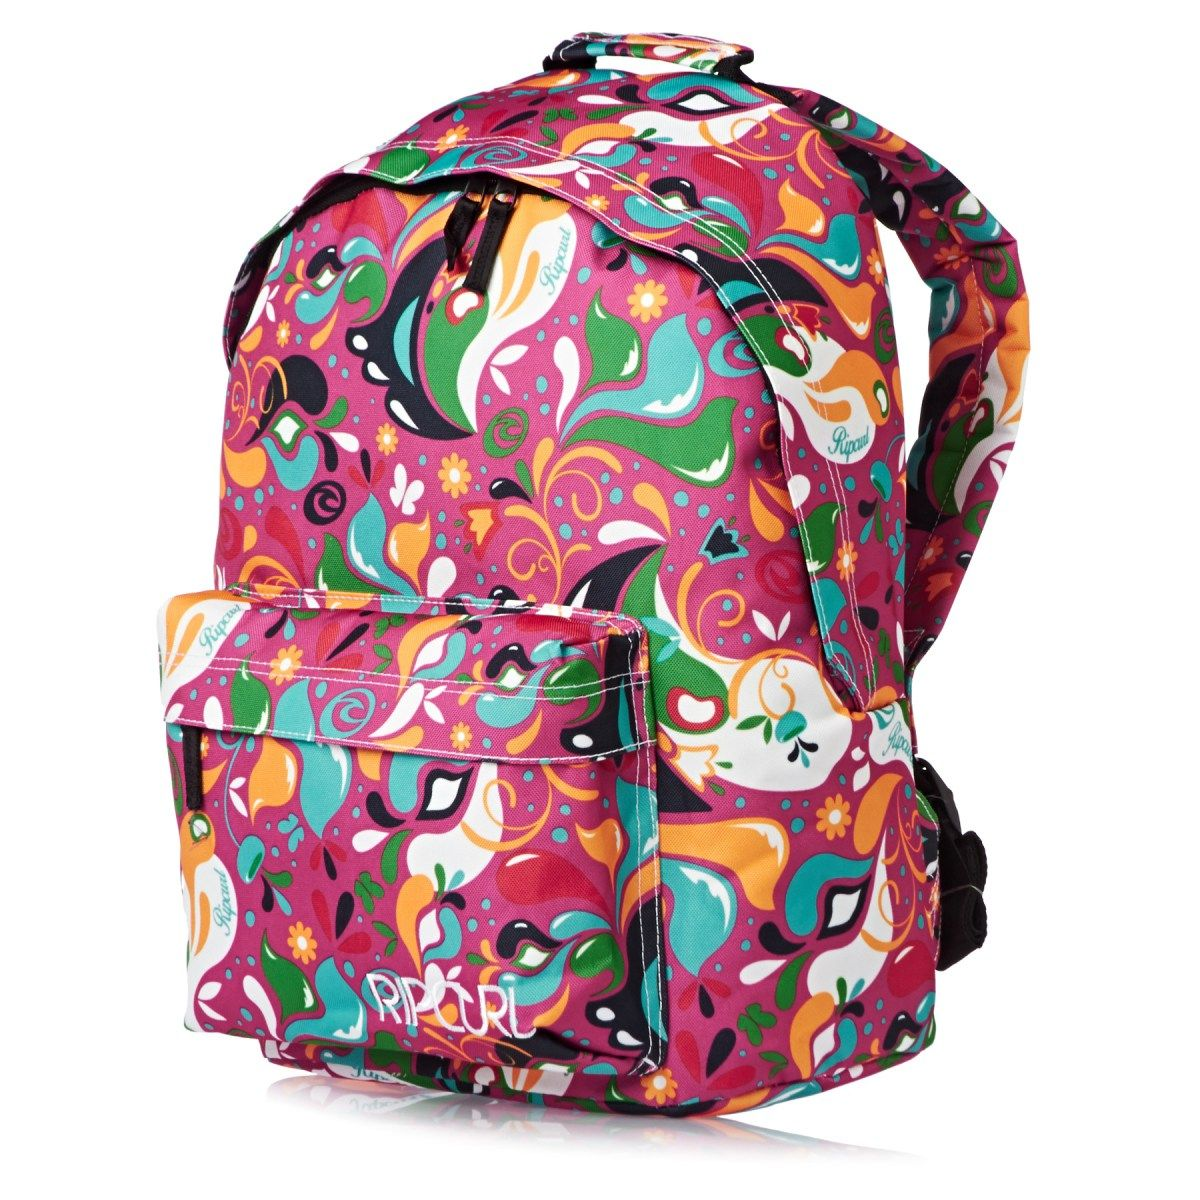 8ef60f2f0130 Women s Rip Curl Backpacks - Rip Curl Drops Dome School Pack - Pink ...